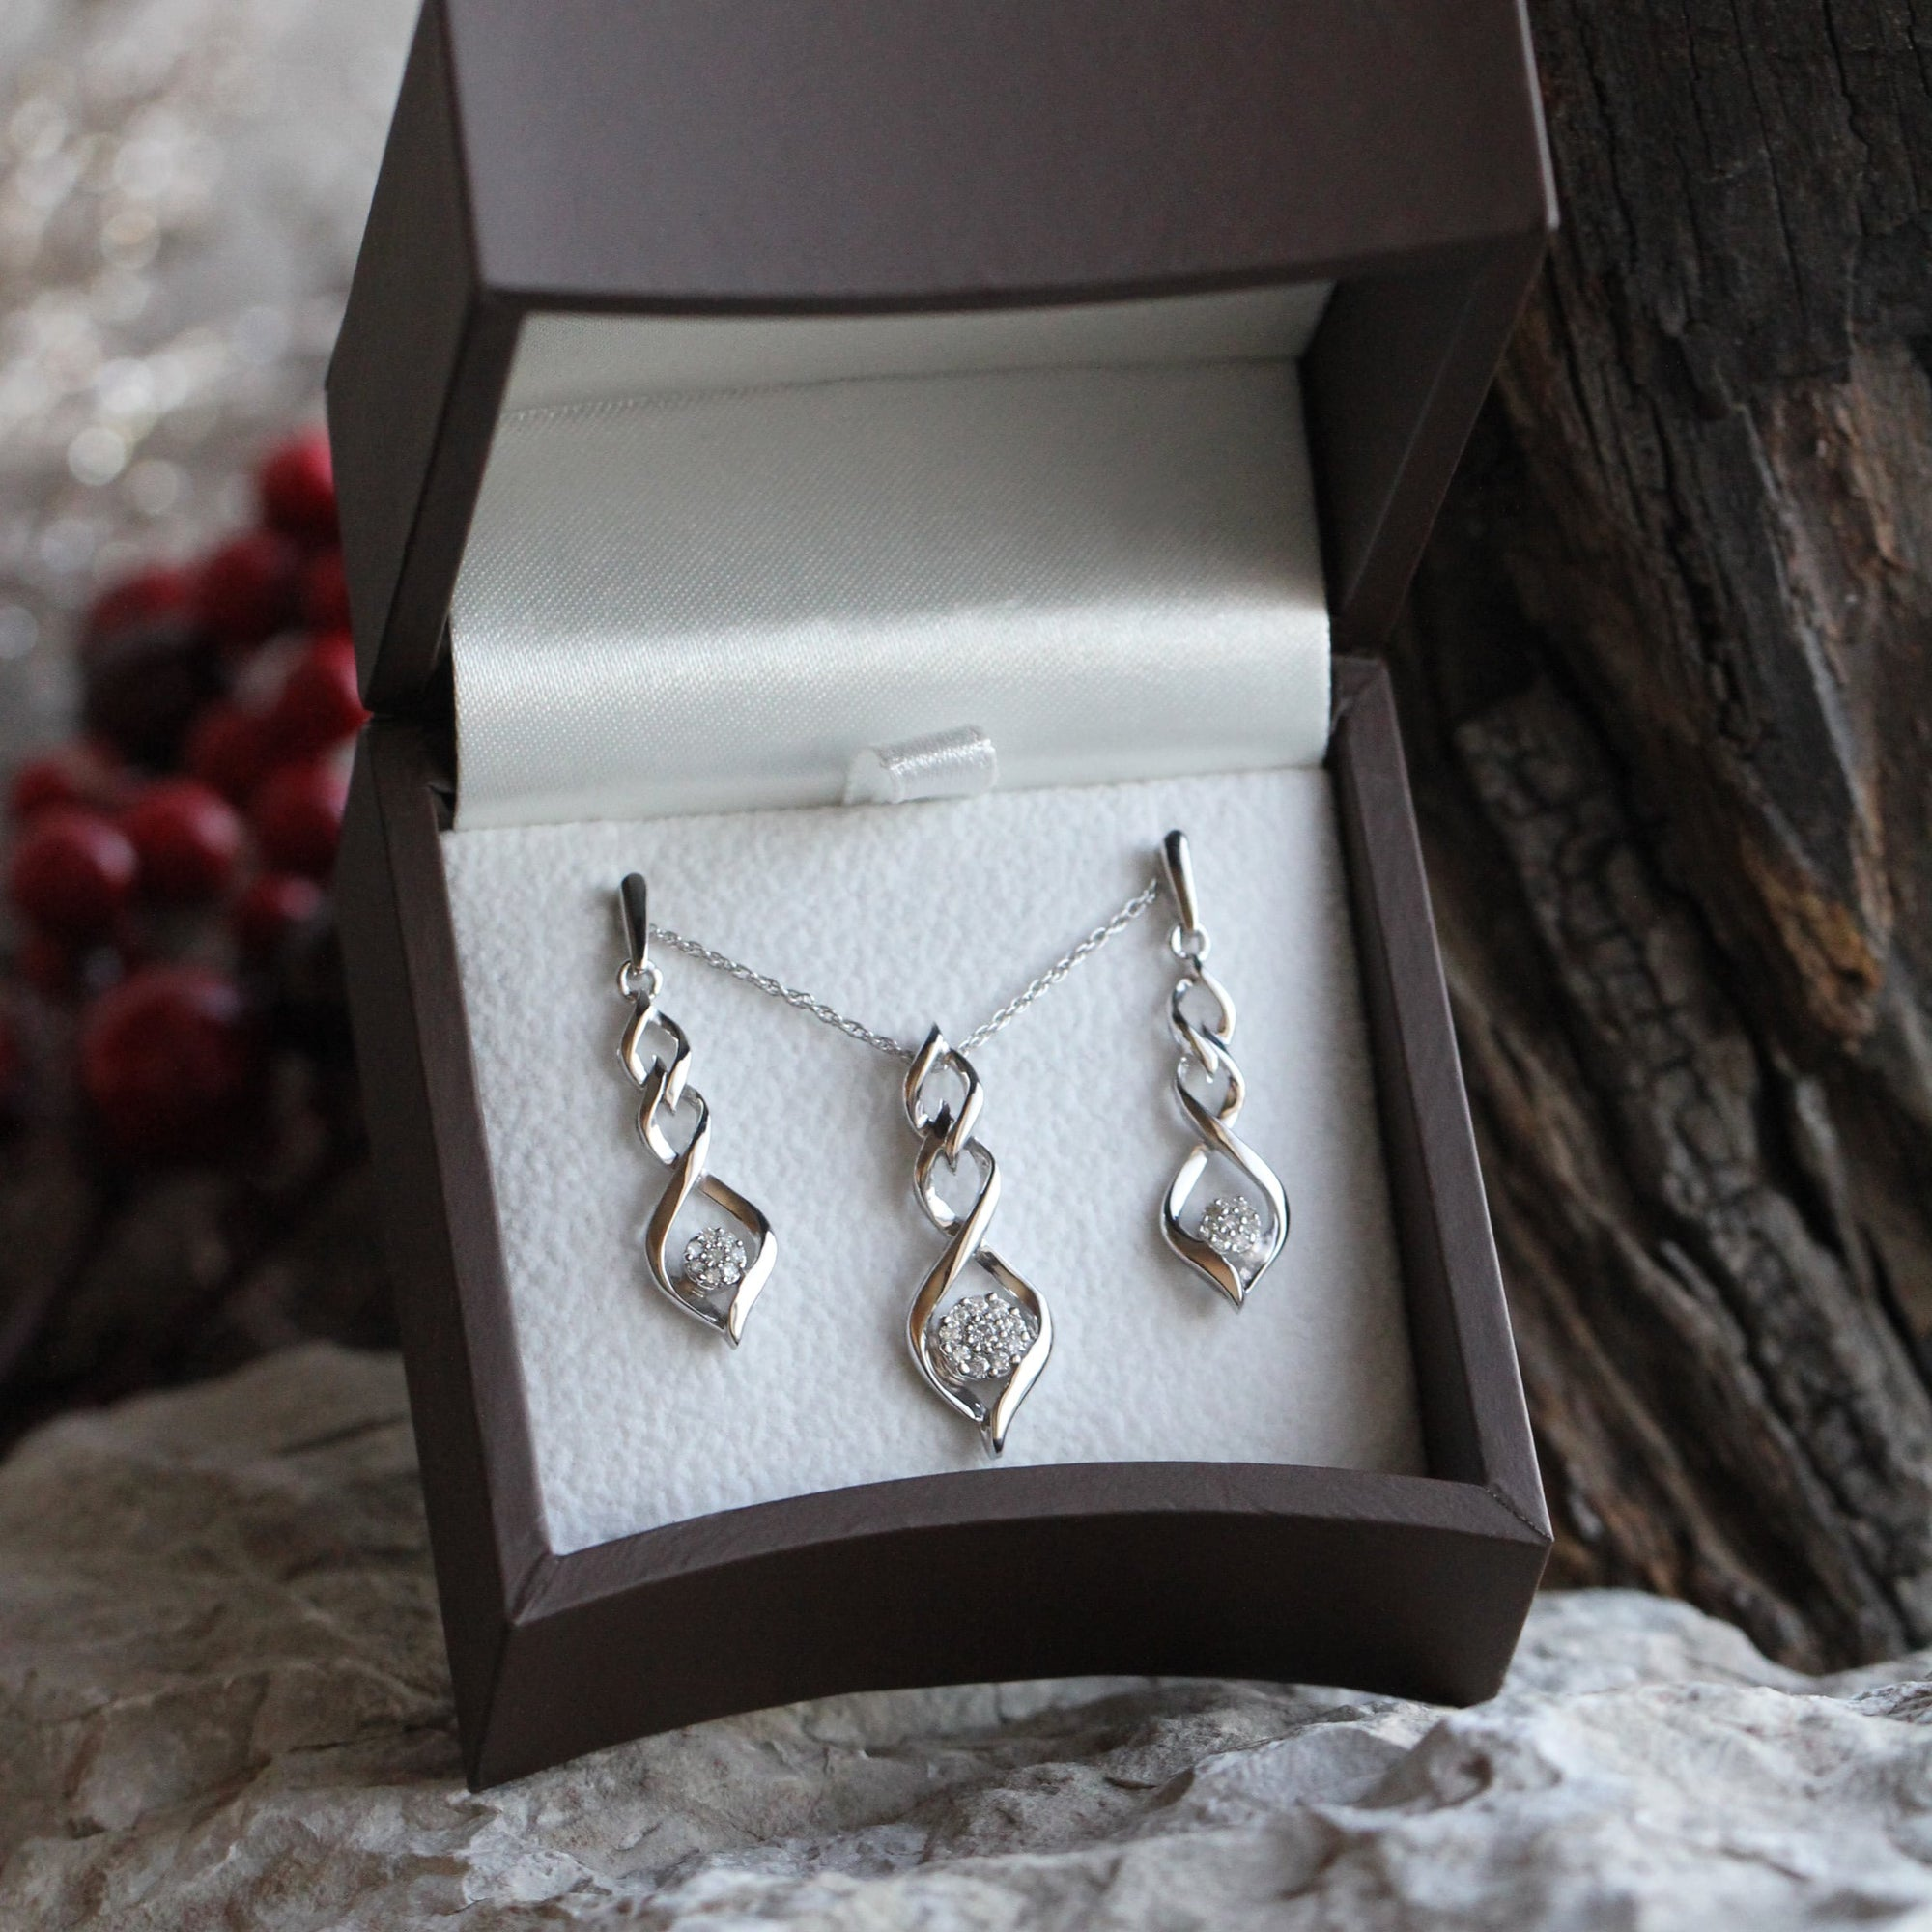 Diamond Twist Earrings and Necklace Gift Set in Sterling Silver-SHGS3007 - Jewelry by Johan